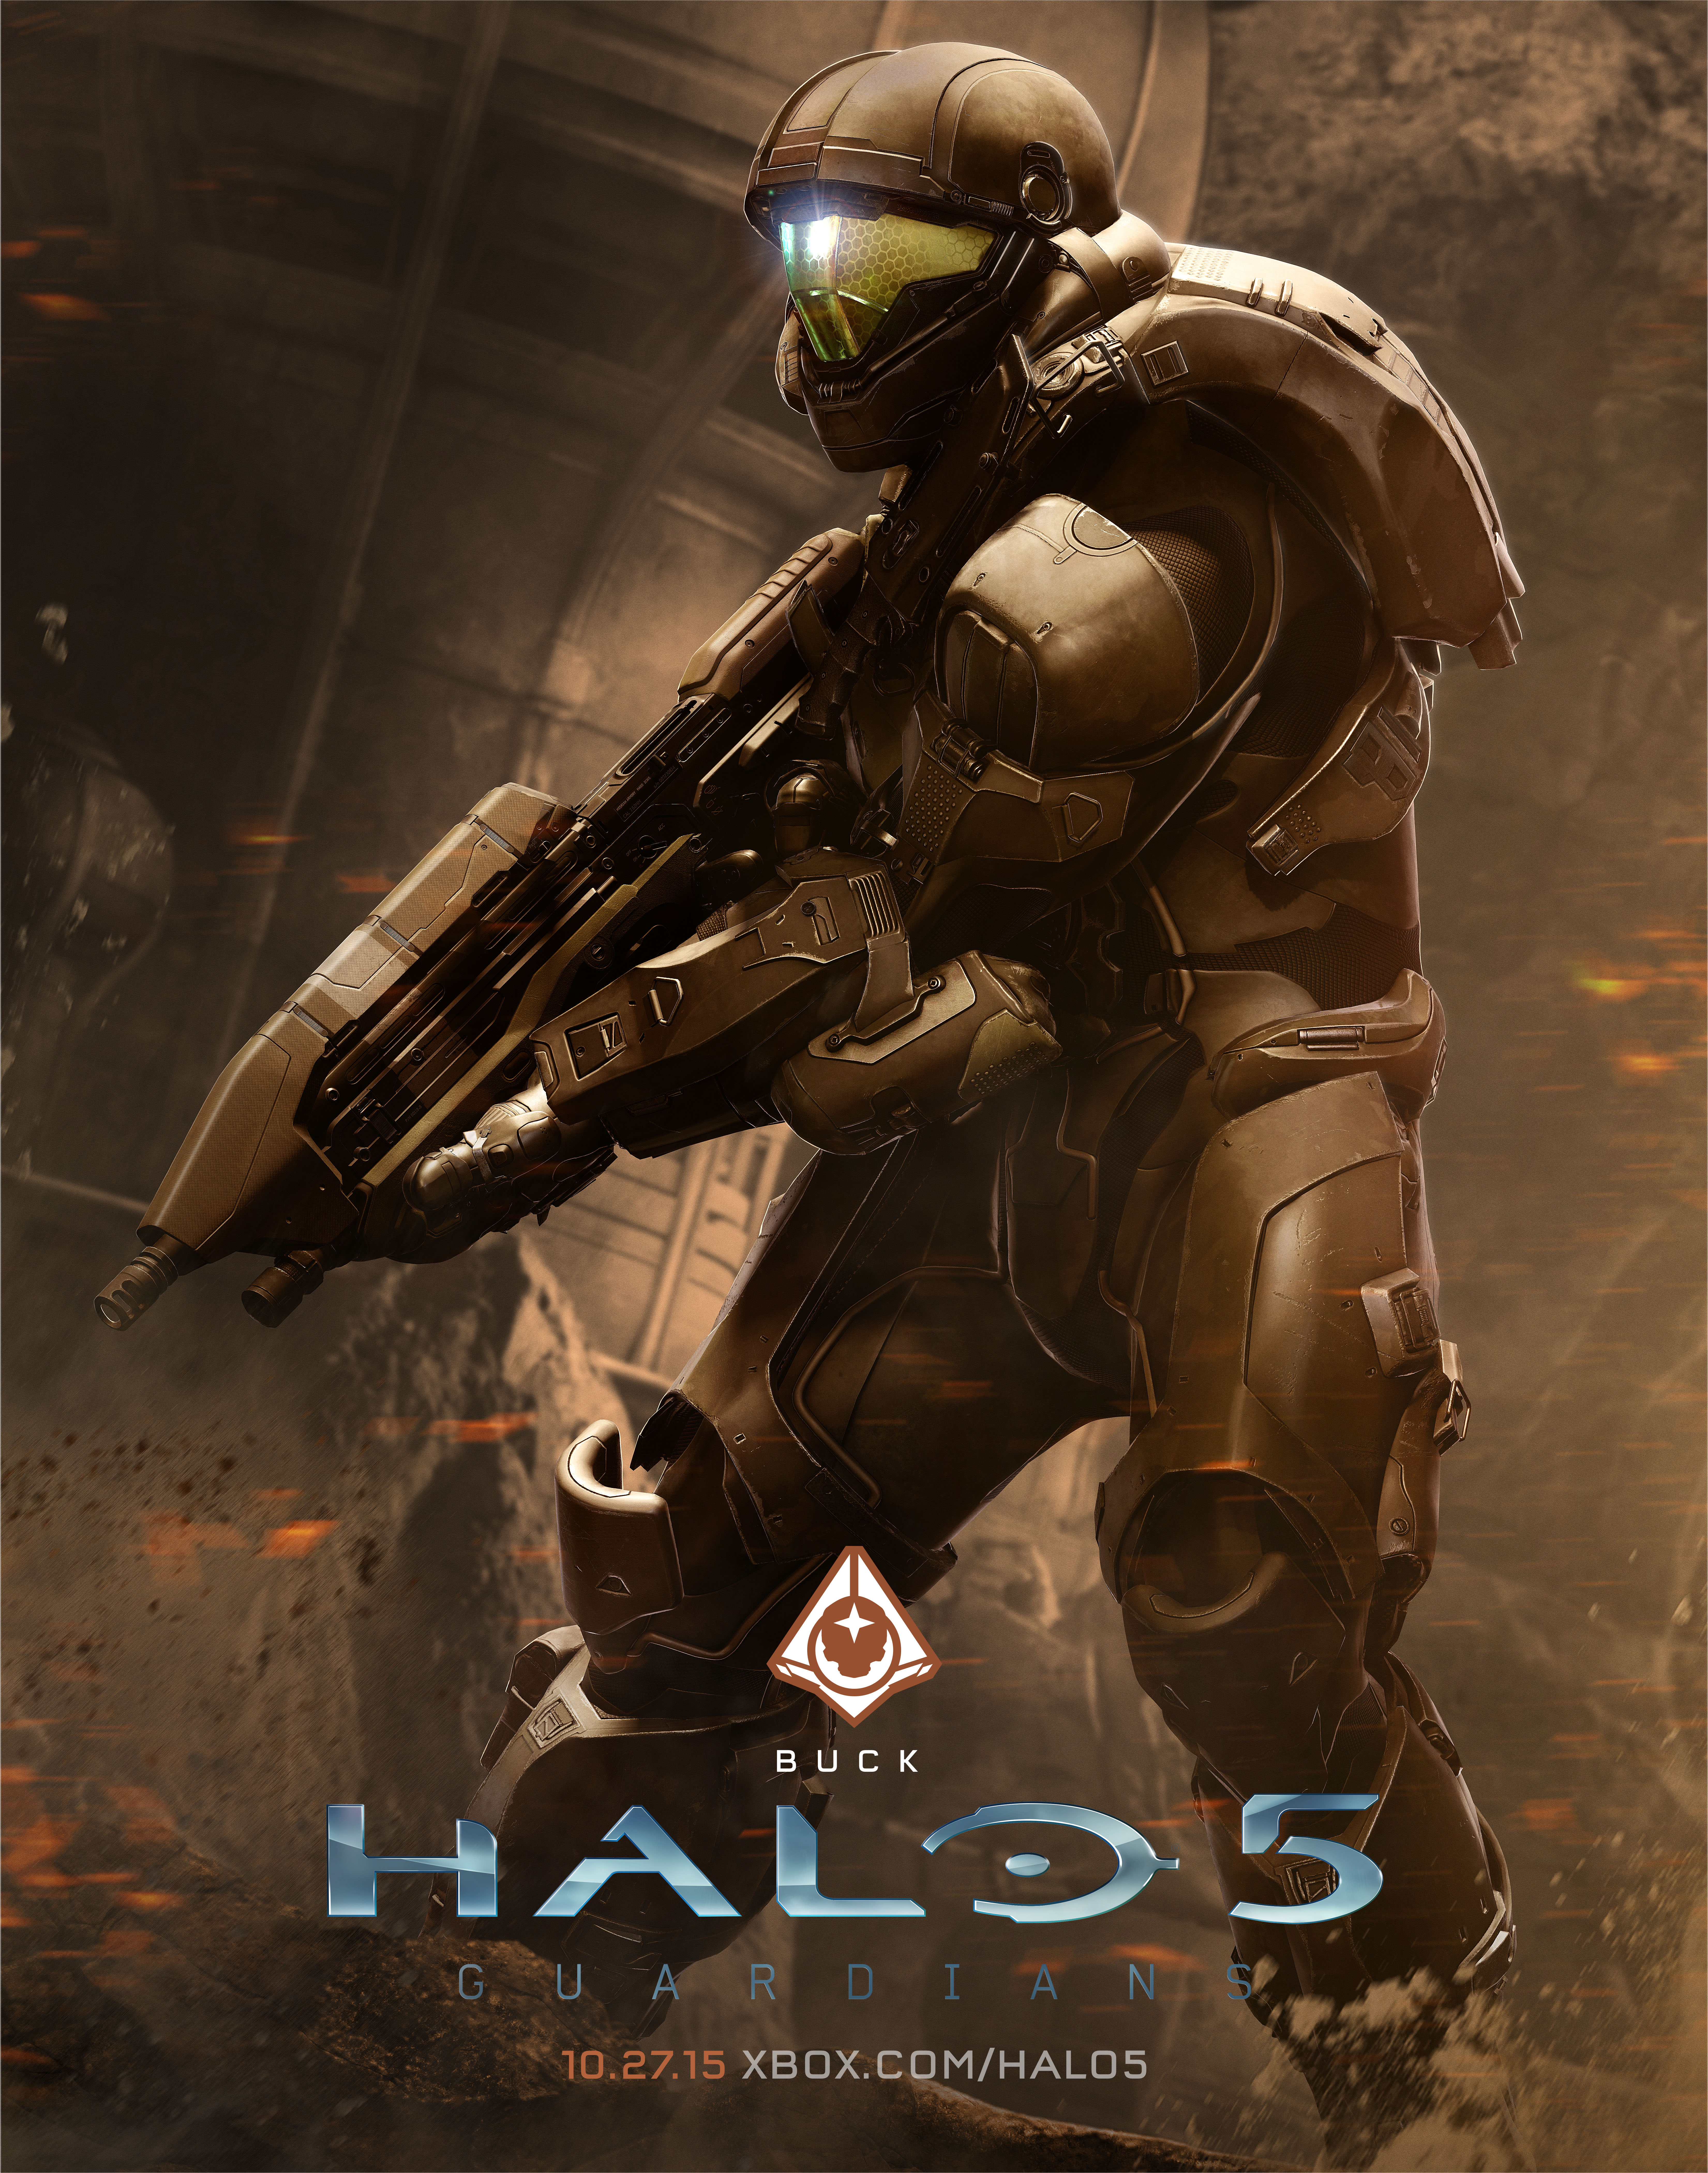 helicopter designs with Halo 5 on Esports Team Gaming Mascot Logo Designs besides Best A 10 Thunderbolt Memes furthermore Halo 5 further Morning At Moma In New York also 68 Hd Cellphone Wallpapers For All Mobiles Brands.